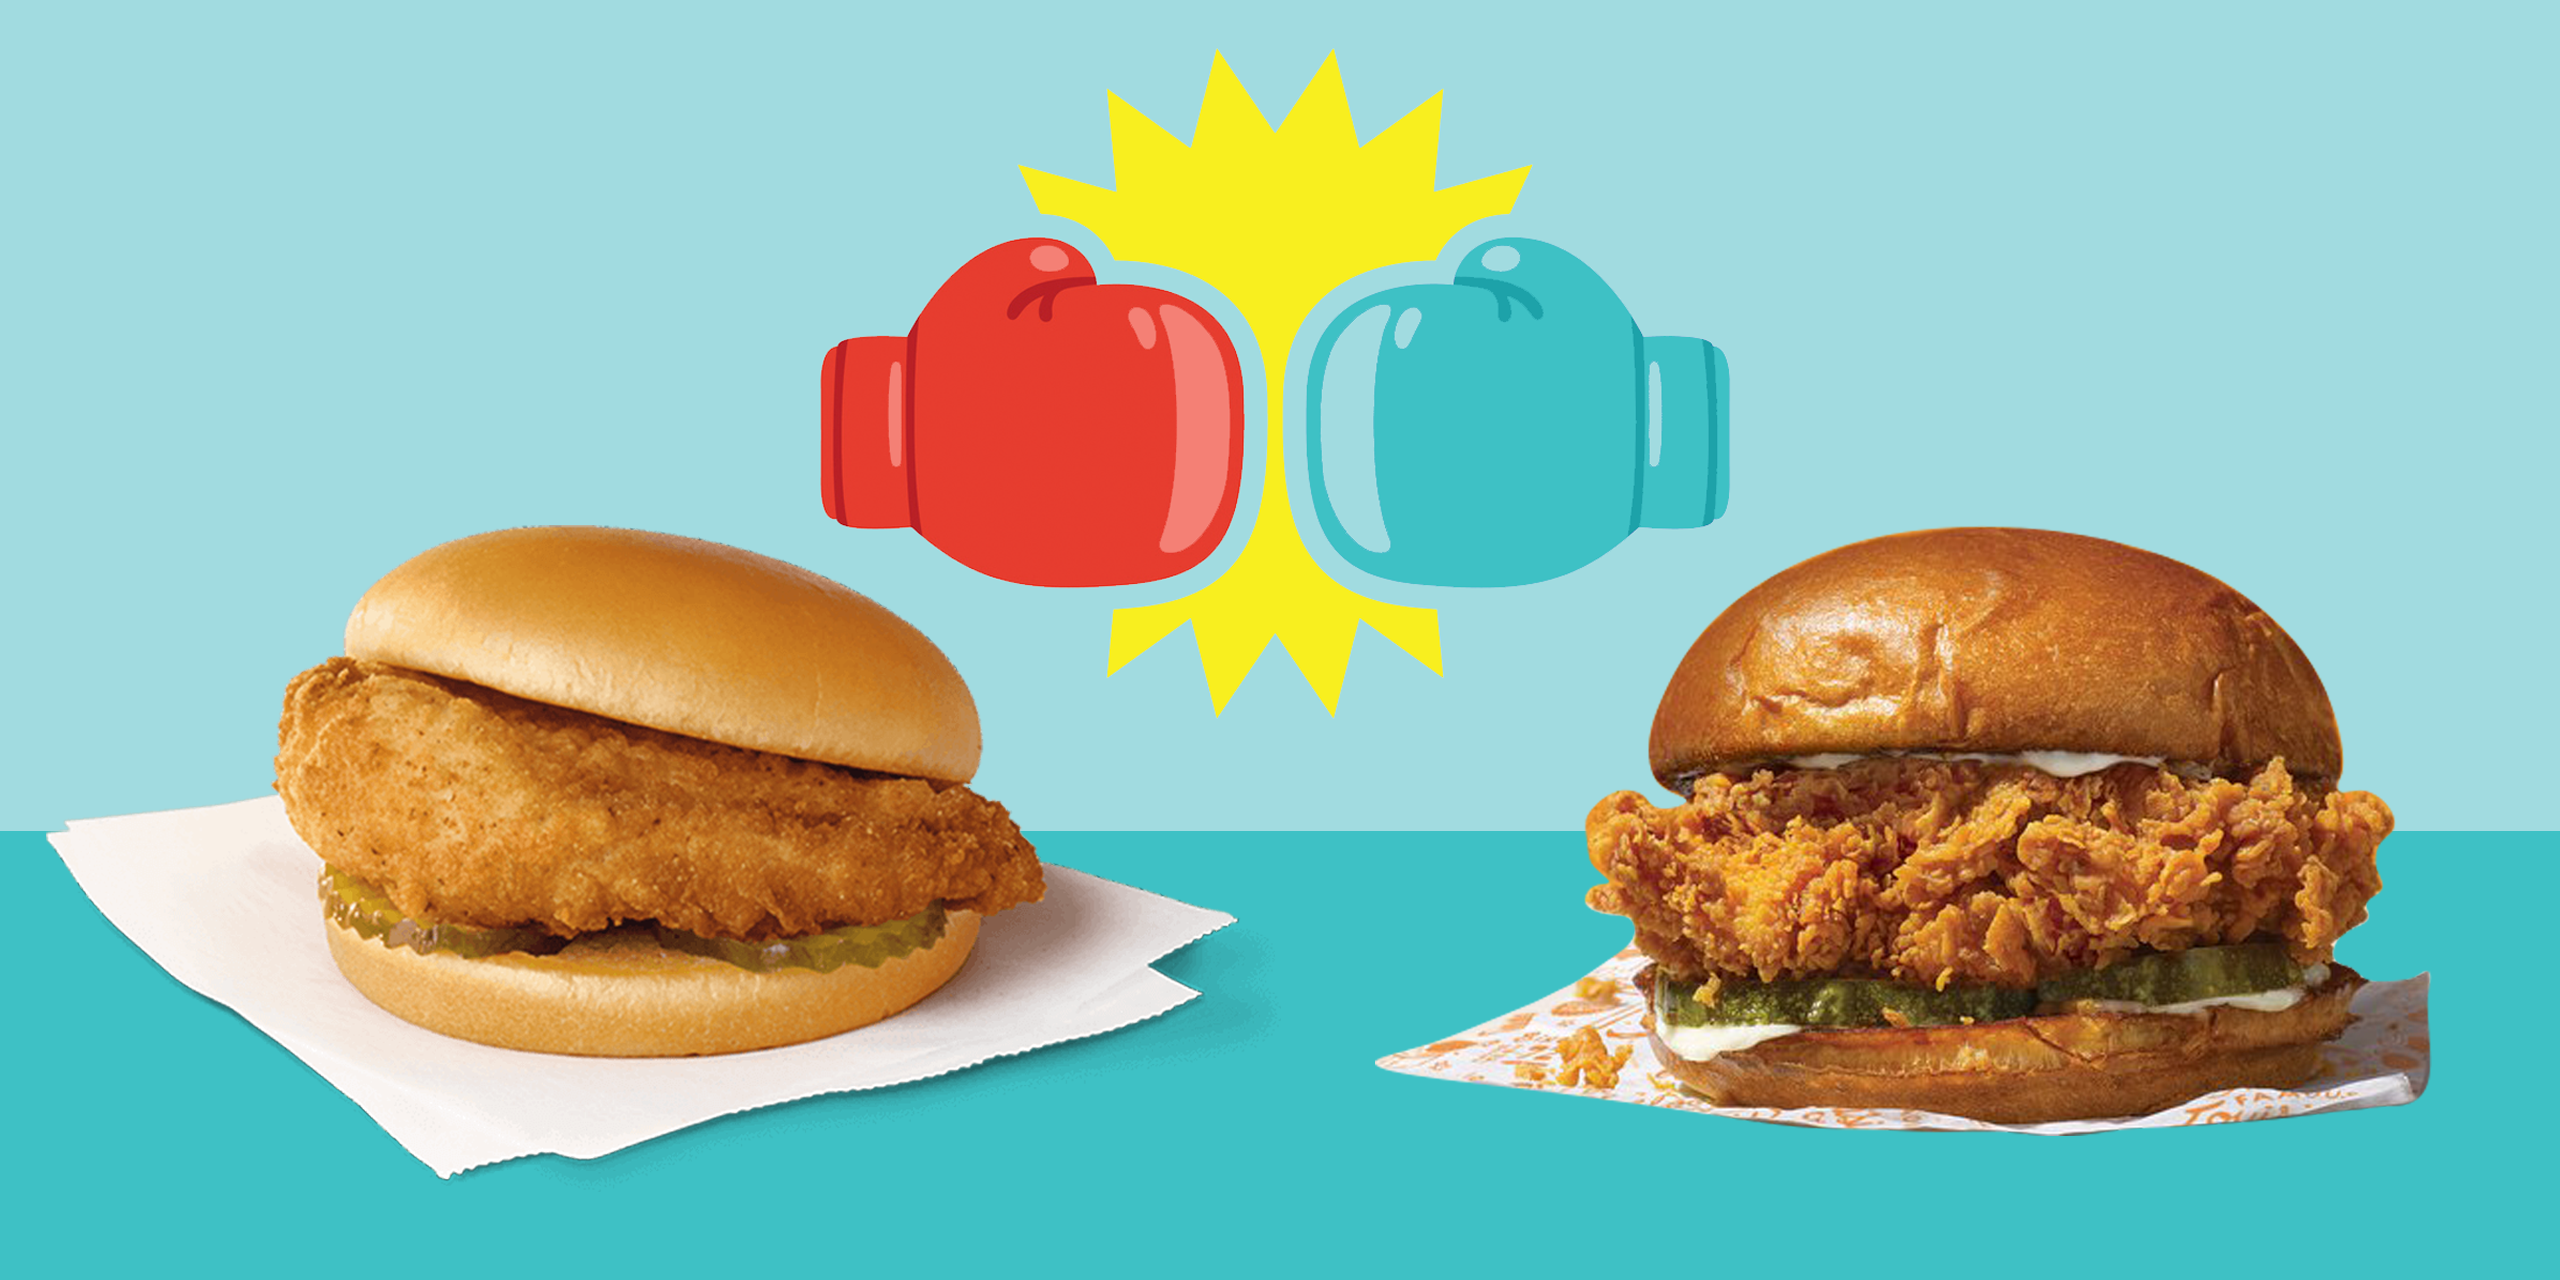 Popeyes vs. Chick-fil-A Chicken Sandwich: Dietitians Weigh In On Calories